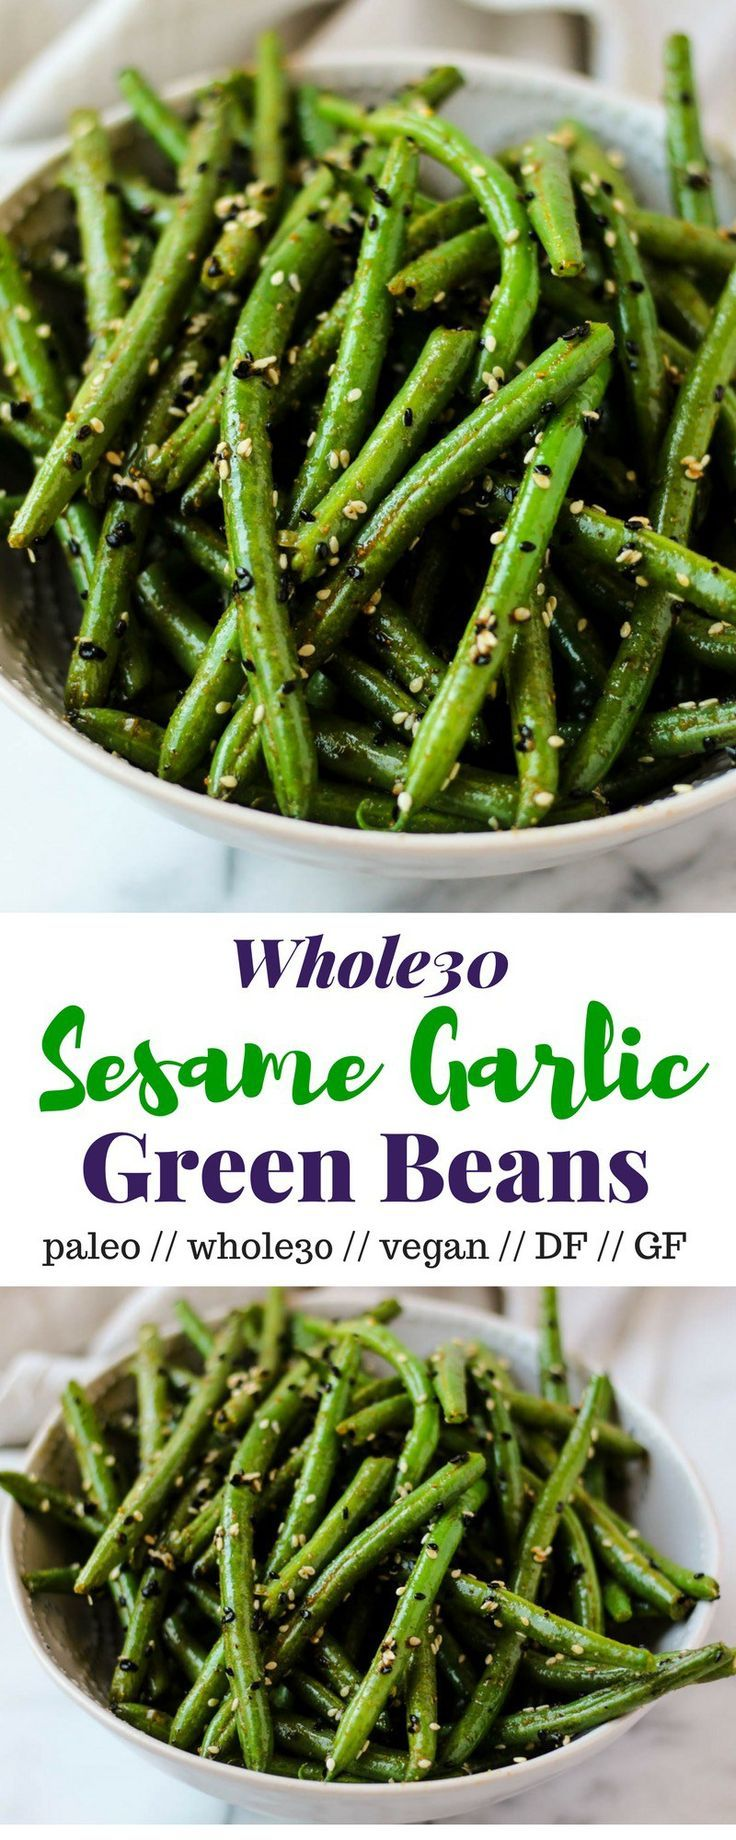 A quick and simple paleo, vegan, and Whole30 side dish, these Sesame Garlic Green Beans make the perfect pair for just about anything and come together in less than 20 minutes - Eat the Gains